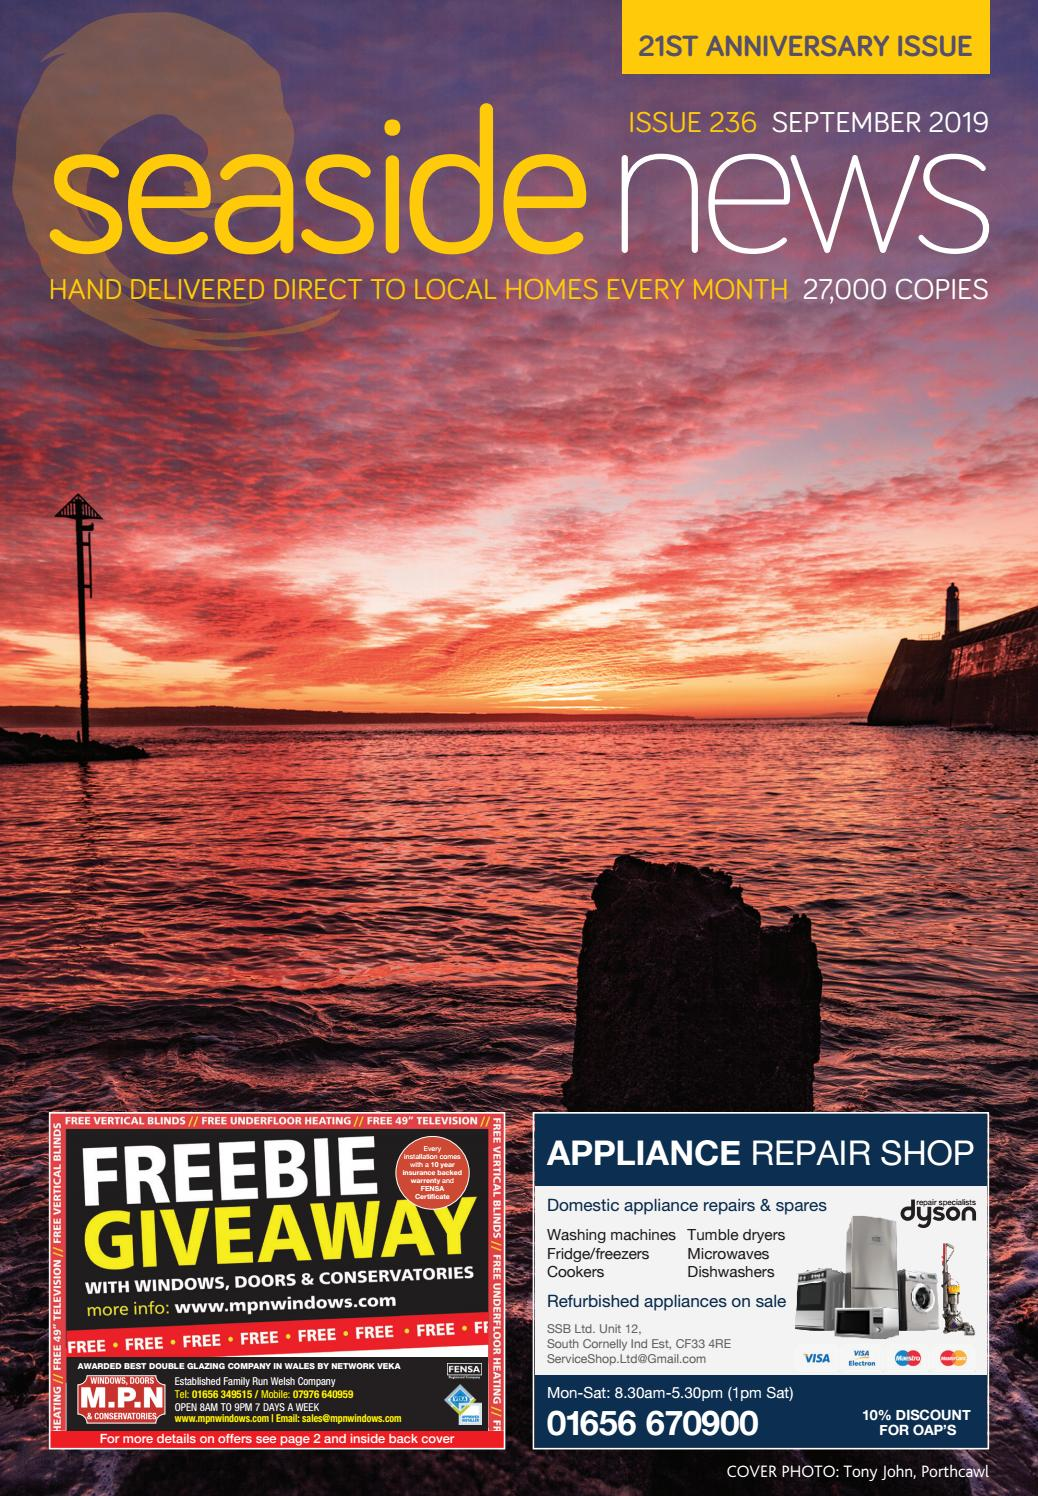 Seaside News 21st Anniversary Issue September 2019 By